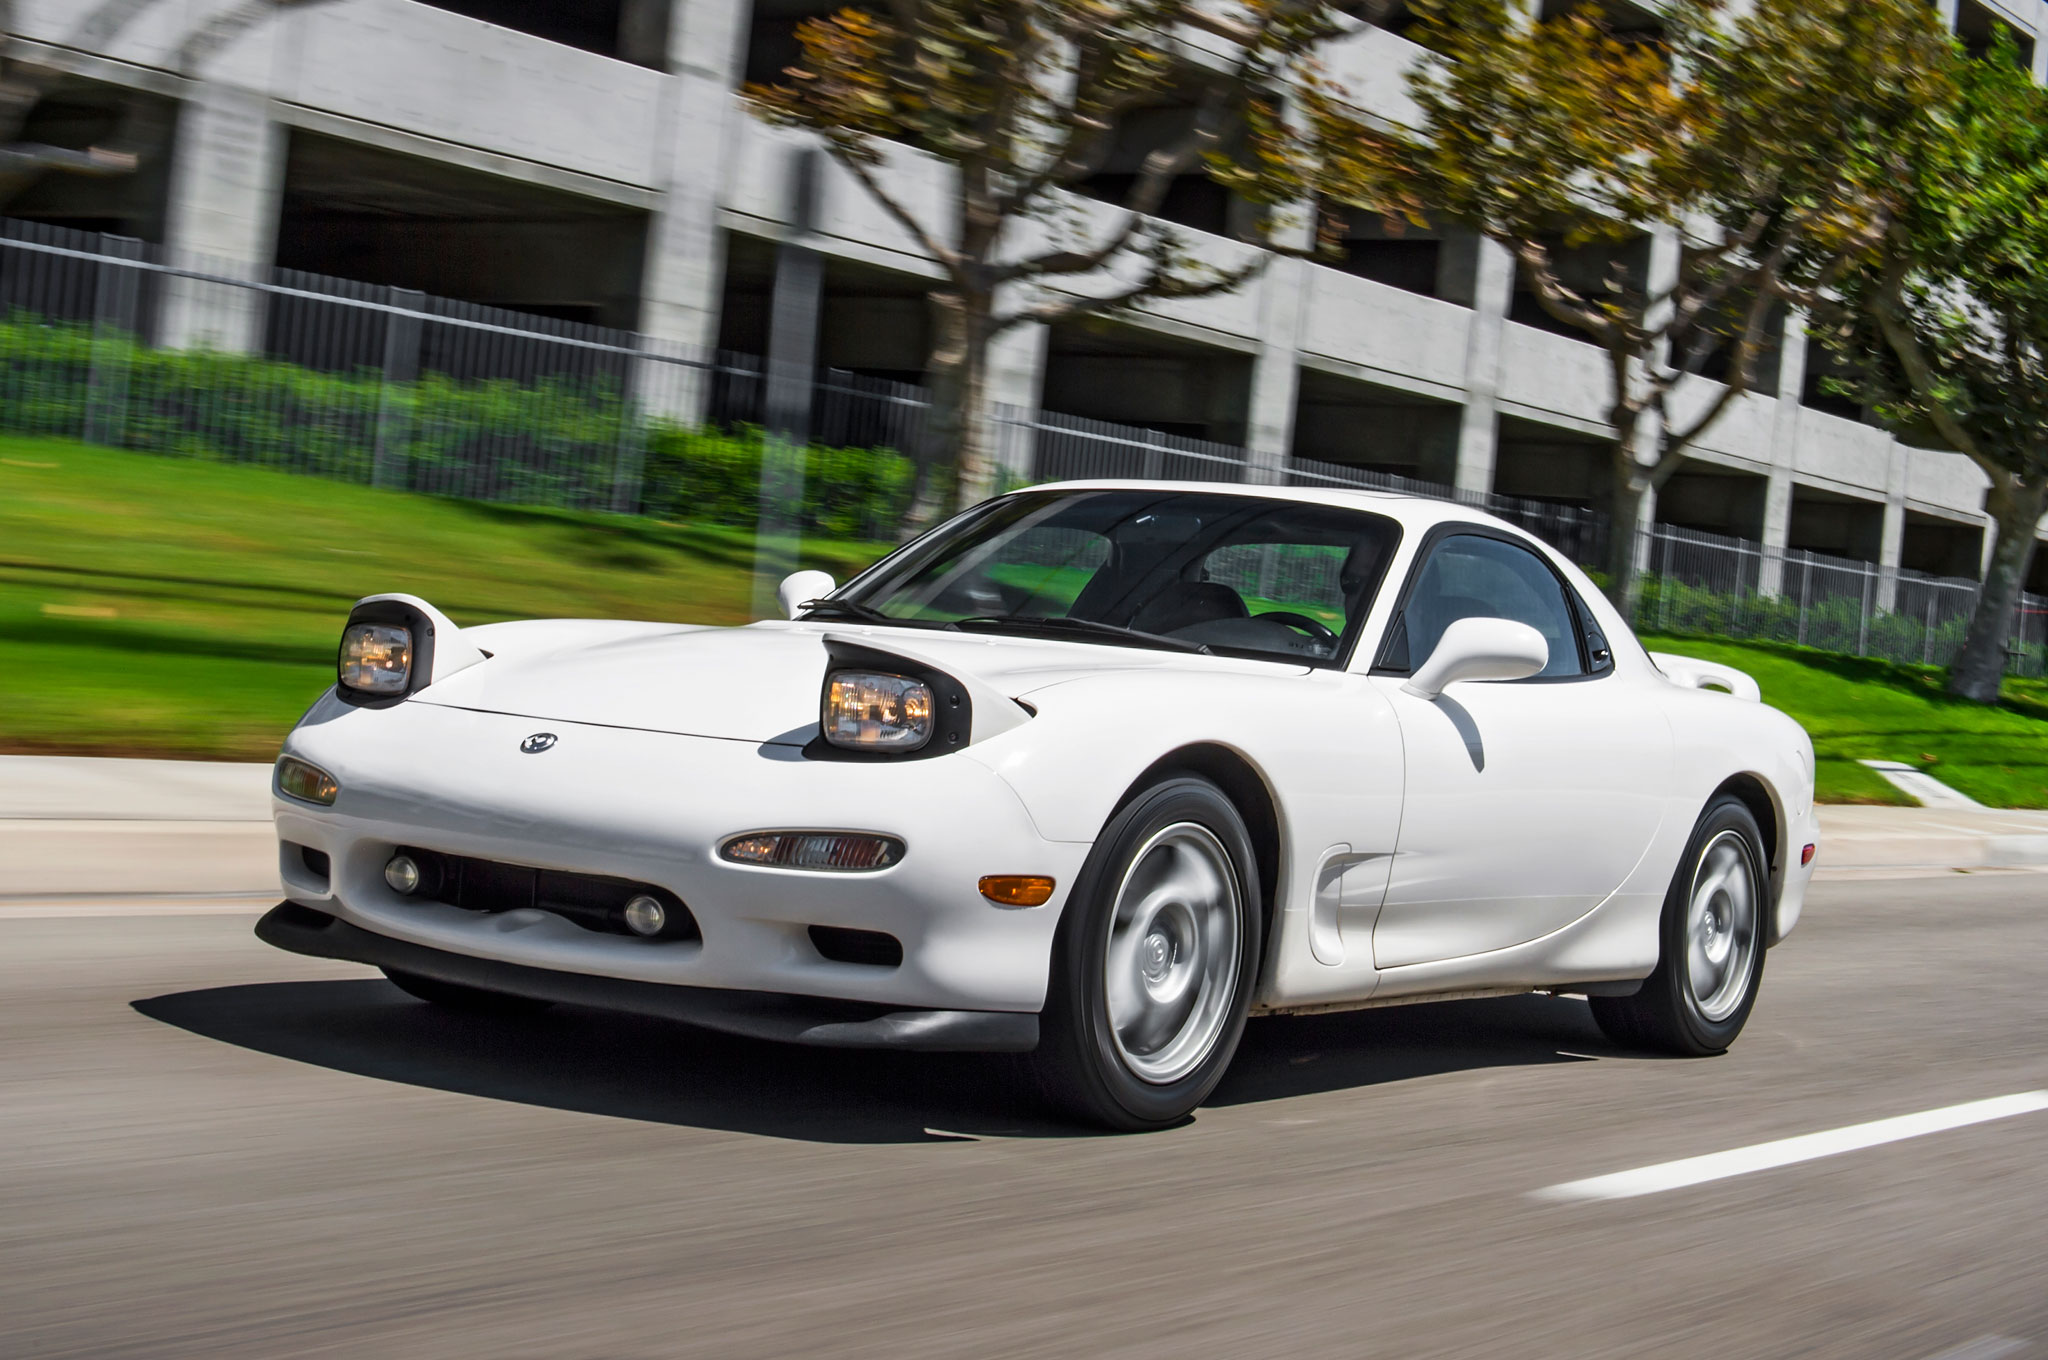 Who Owns Mazda >> Collectible Classic: 1993-1995 Mazda RX-7